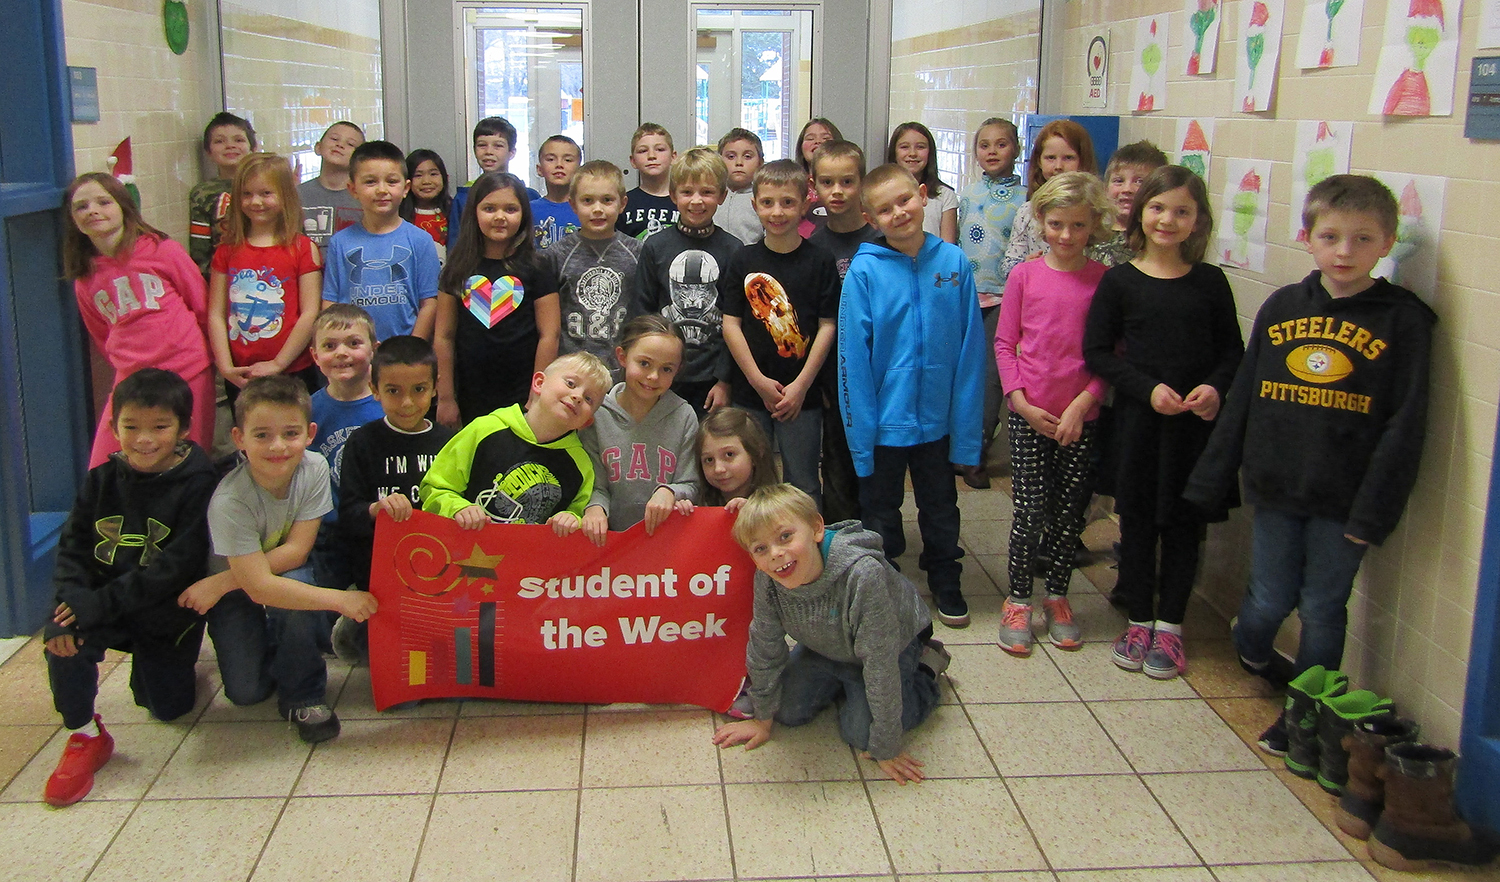 2nd grade students of the week